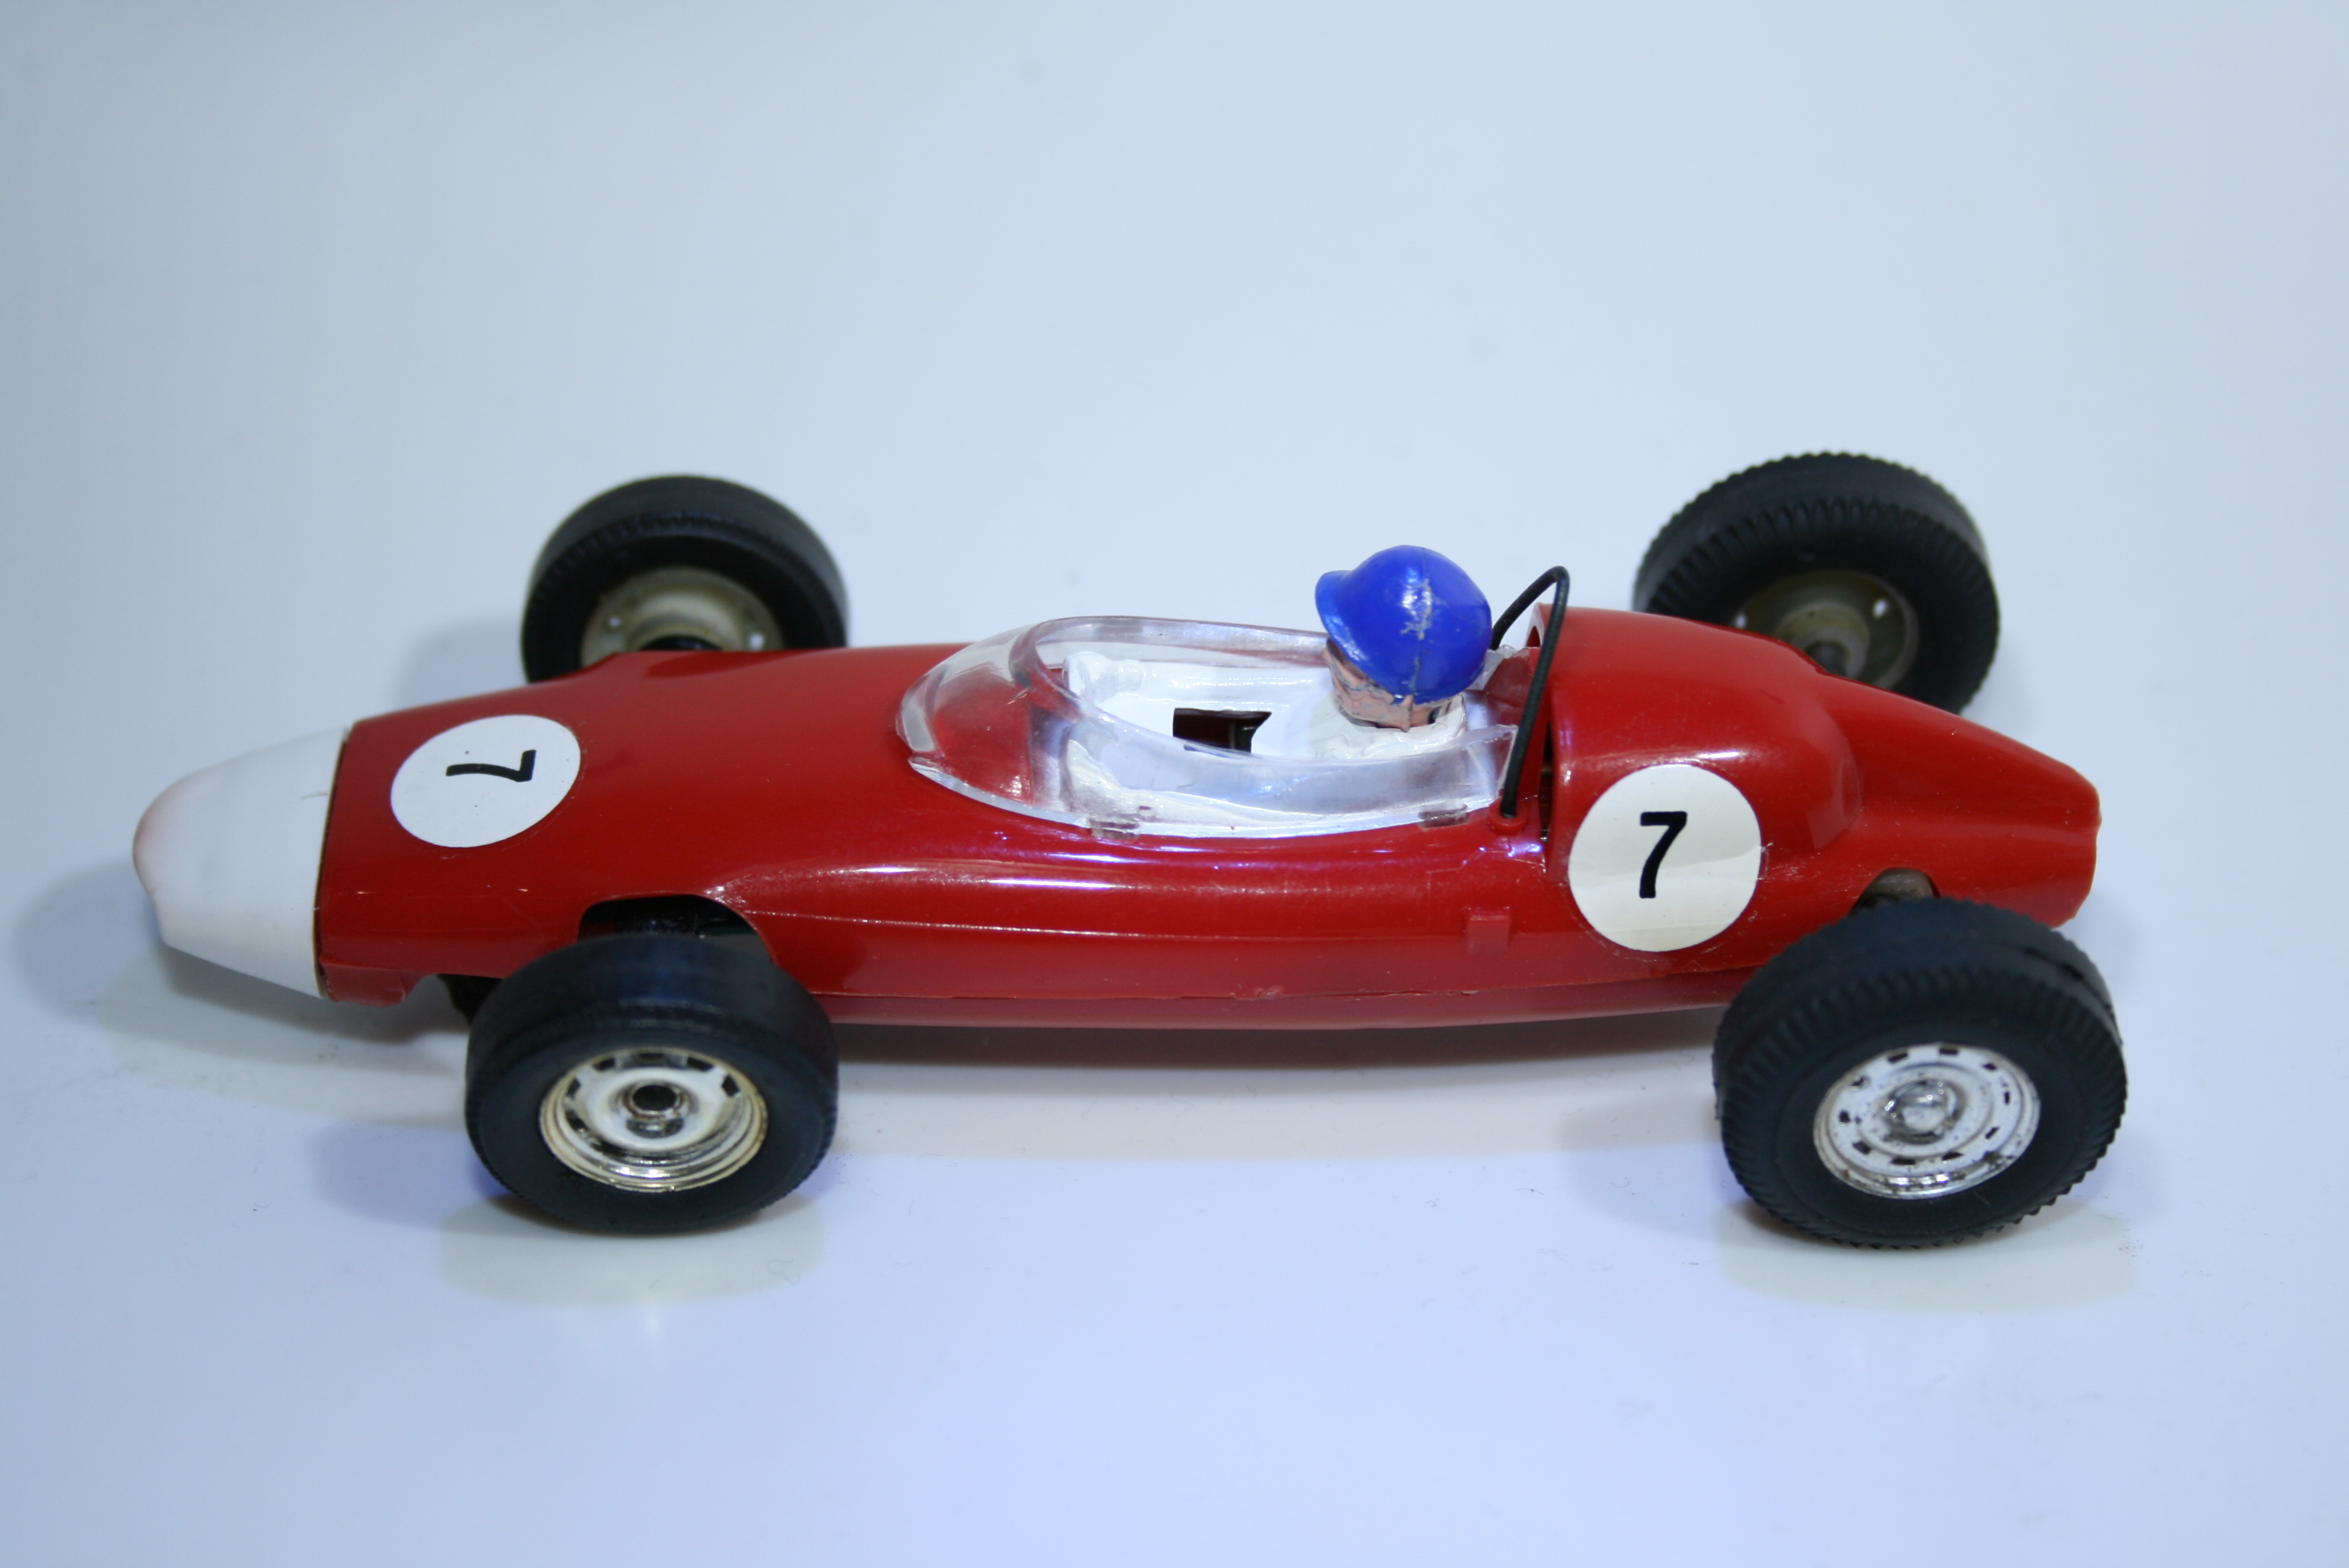 695 BRM P48 Climax 1960-61 G Hill Scalextric C72 FRA 1964-65